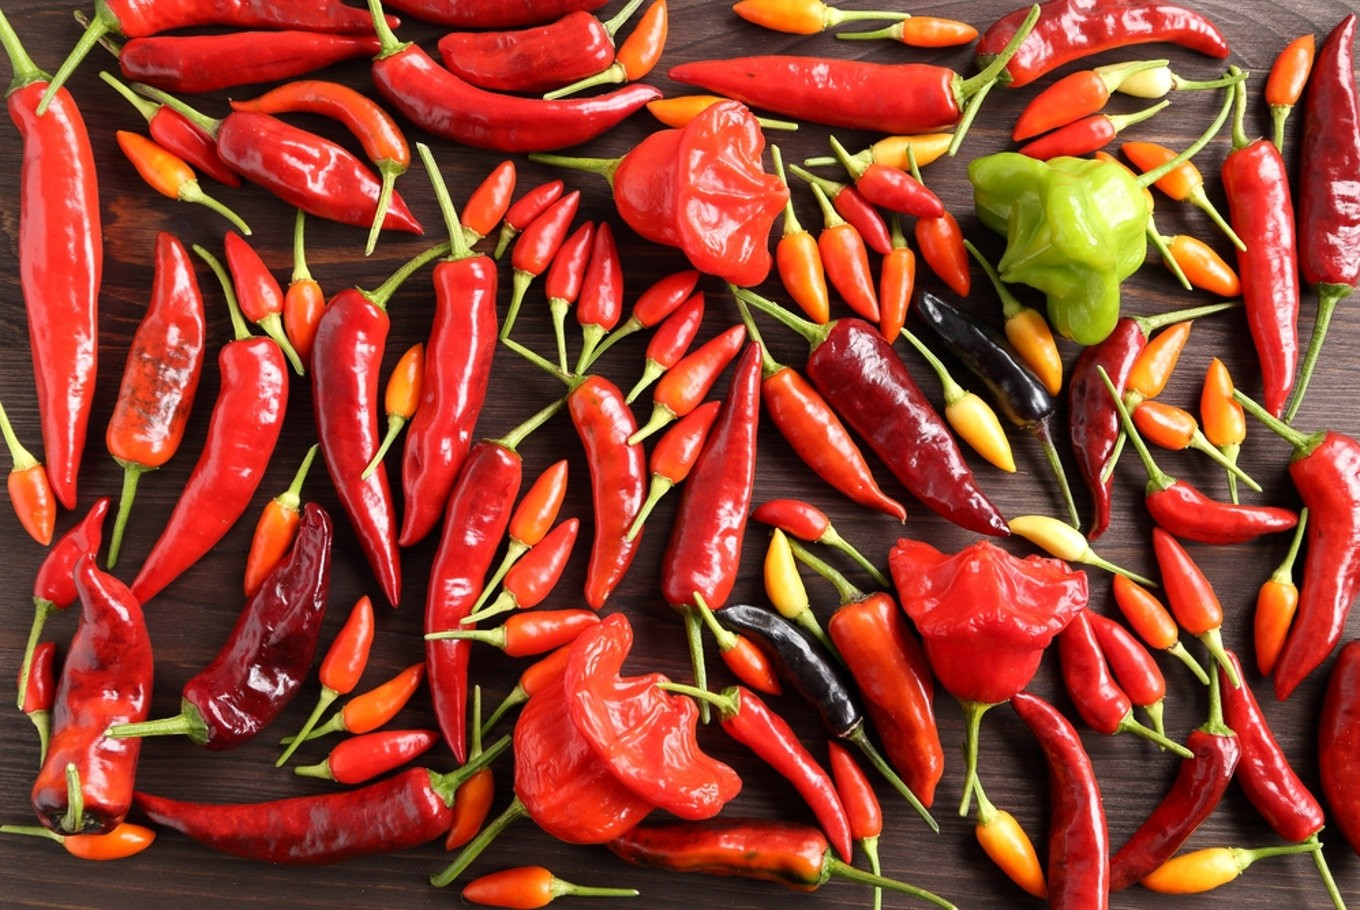 Nine wholesalers 'control chili distribution' in Java, says official